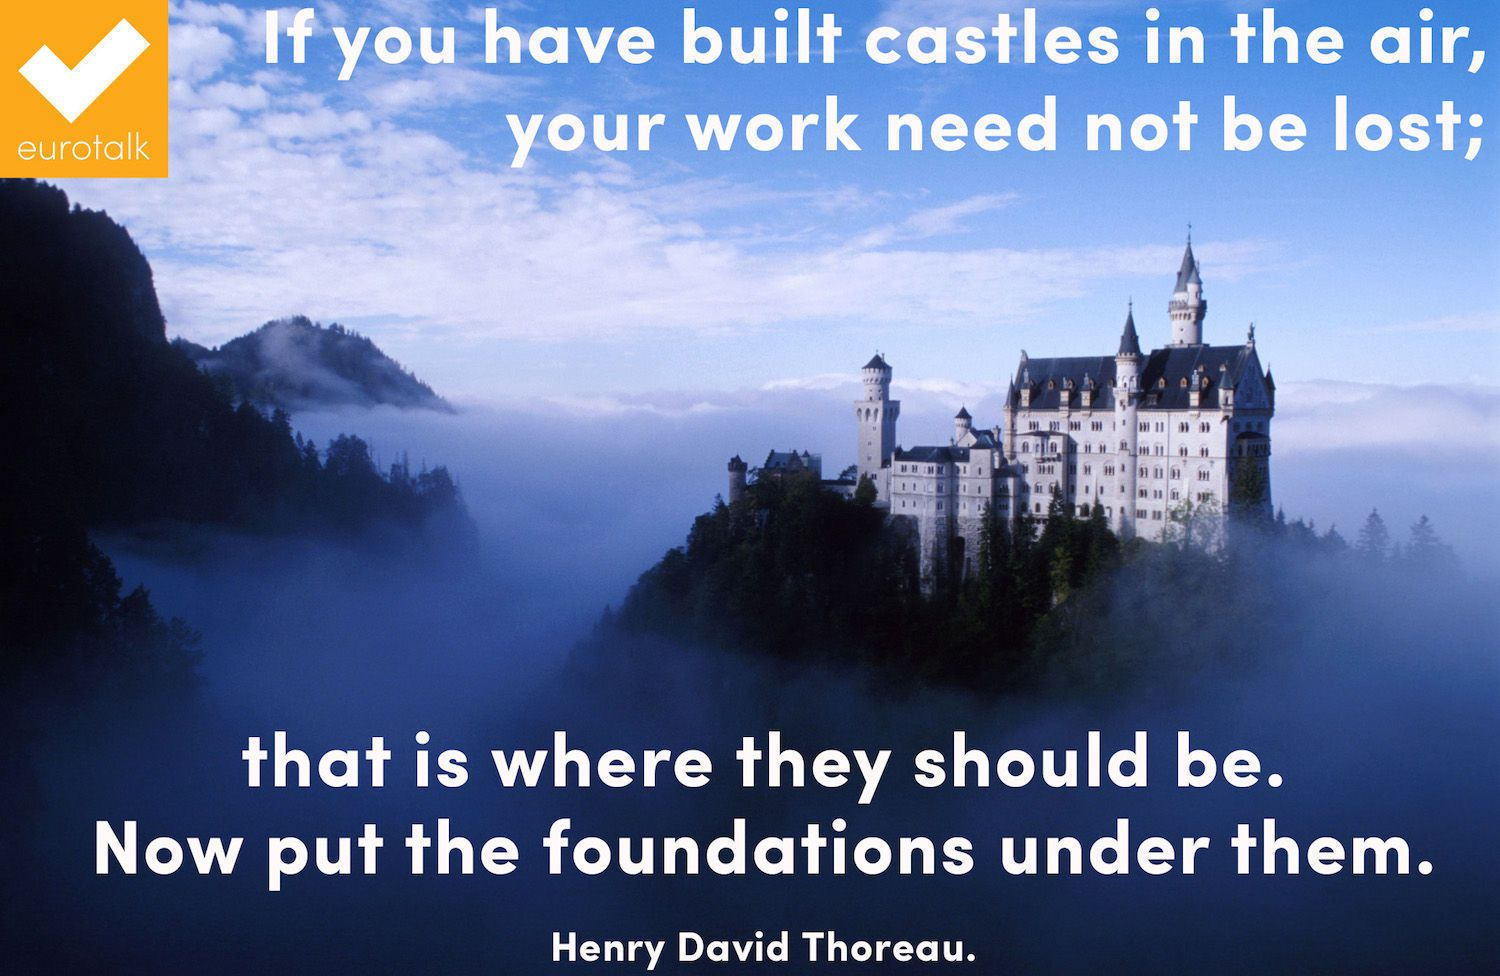 Quotes About Castles Extraordinary Inspirational Quotes  Eurotalk Blog